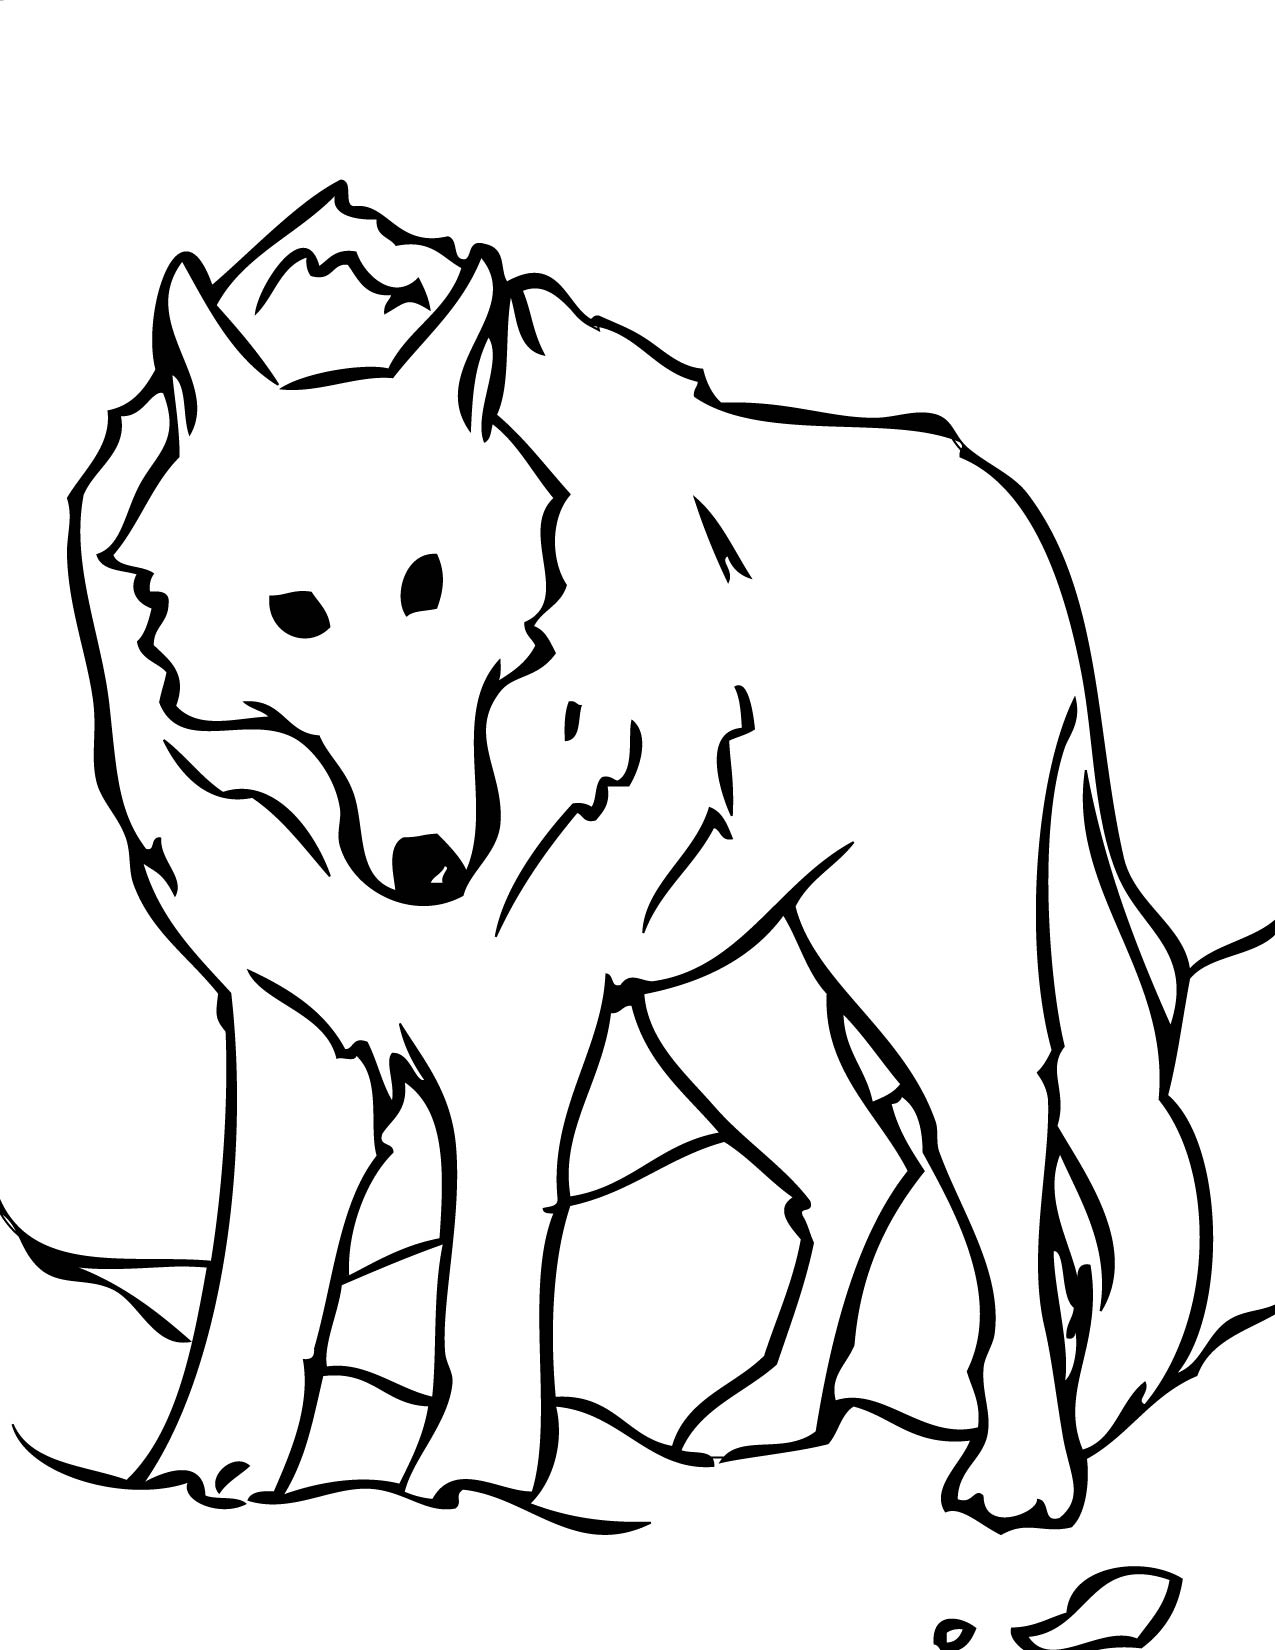 Spotted eagle ray coloring pages - Free Printable Wolf Coloring Pages For Kids